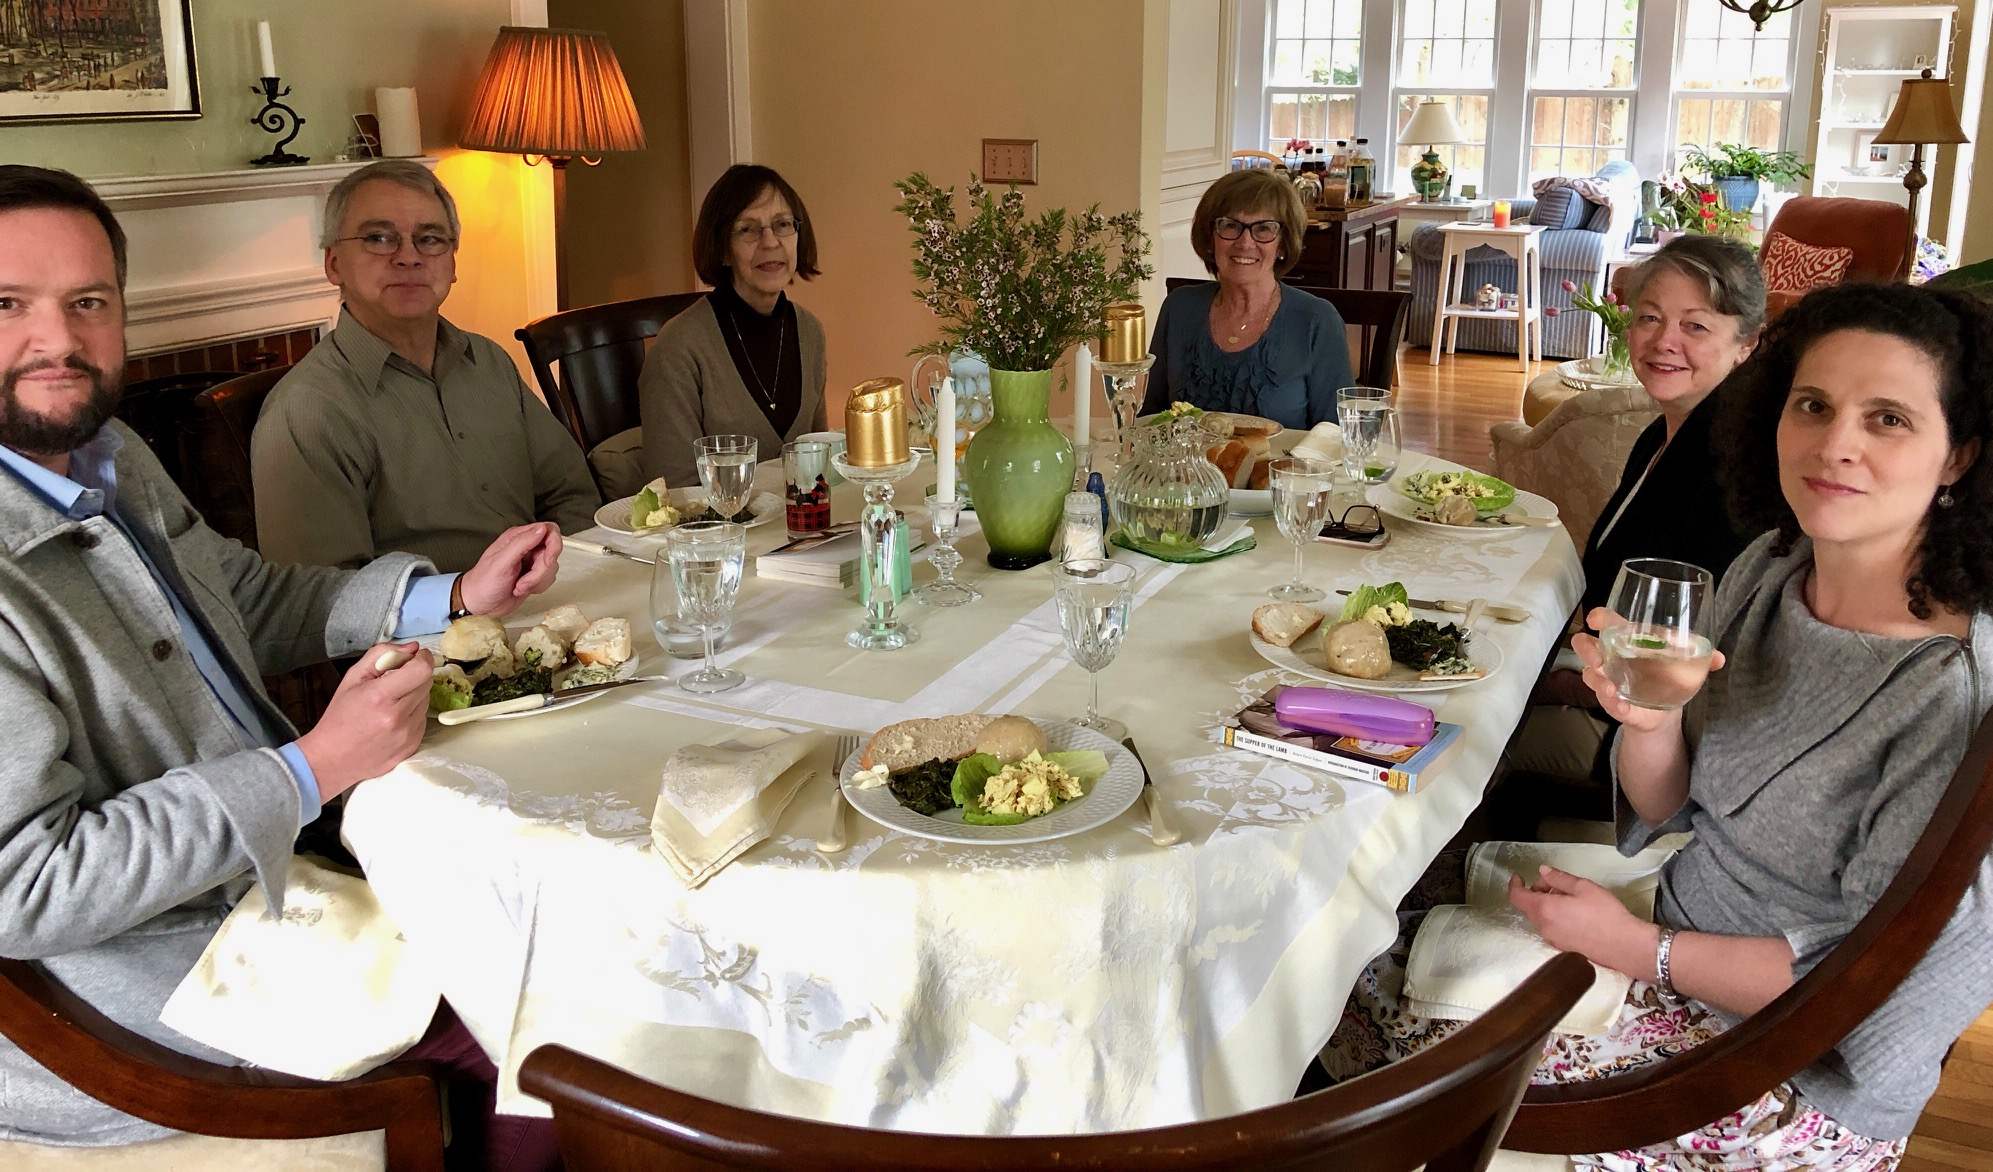 Our book discussion for Robert Farrar Capon's  Supper of the Lamb  included a potluck feast of his recipes.